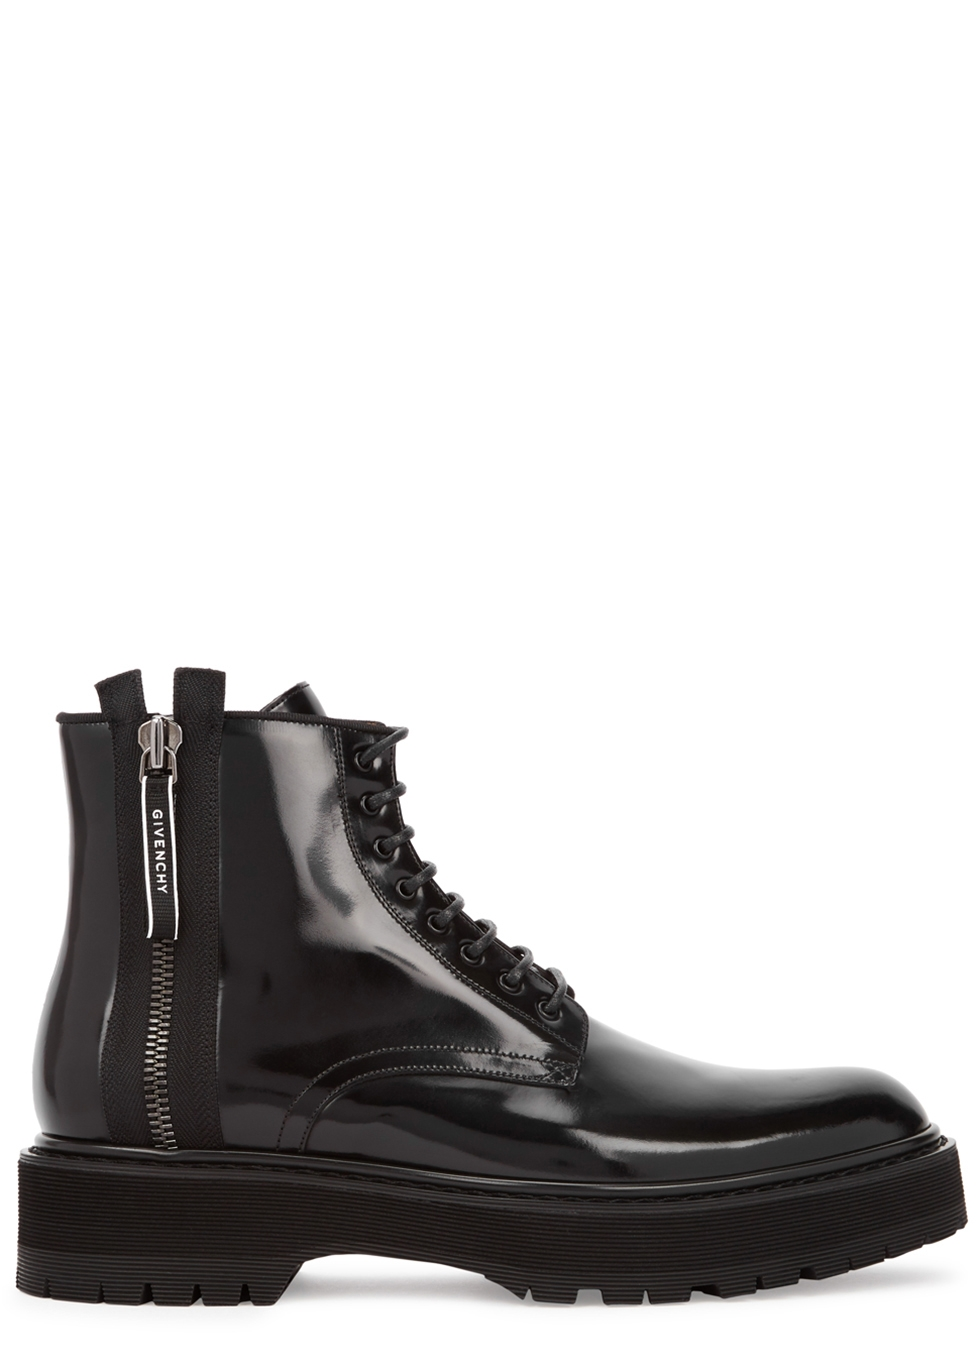 GIVENCHY CAMDEN GLOSSED LEATHER ANKLE BOOTS